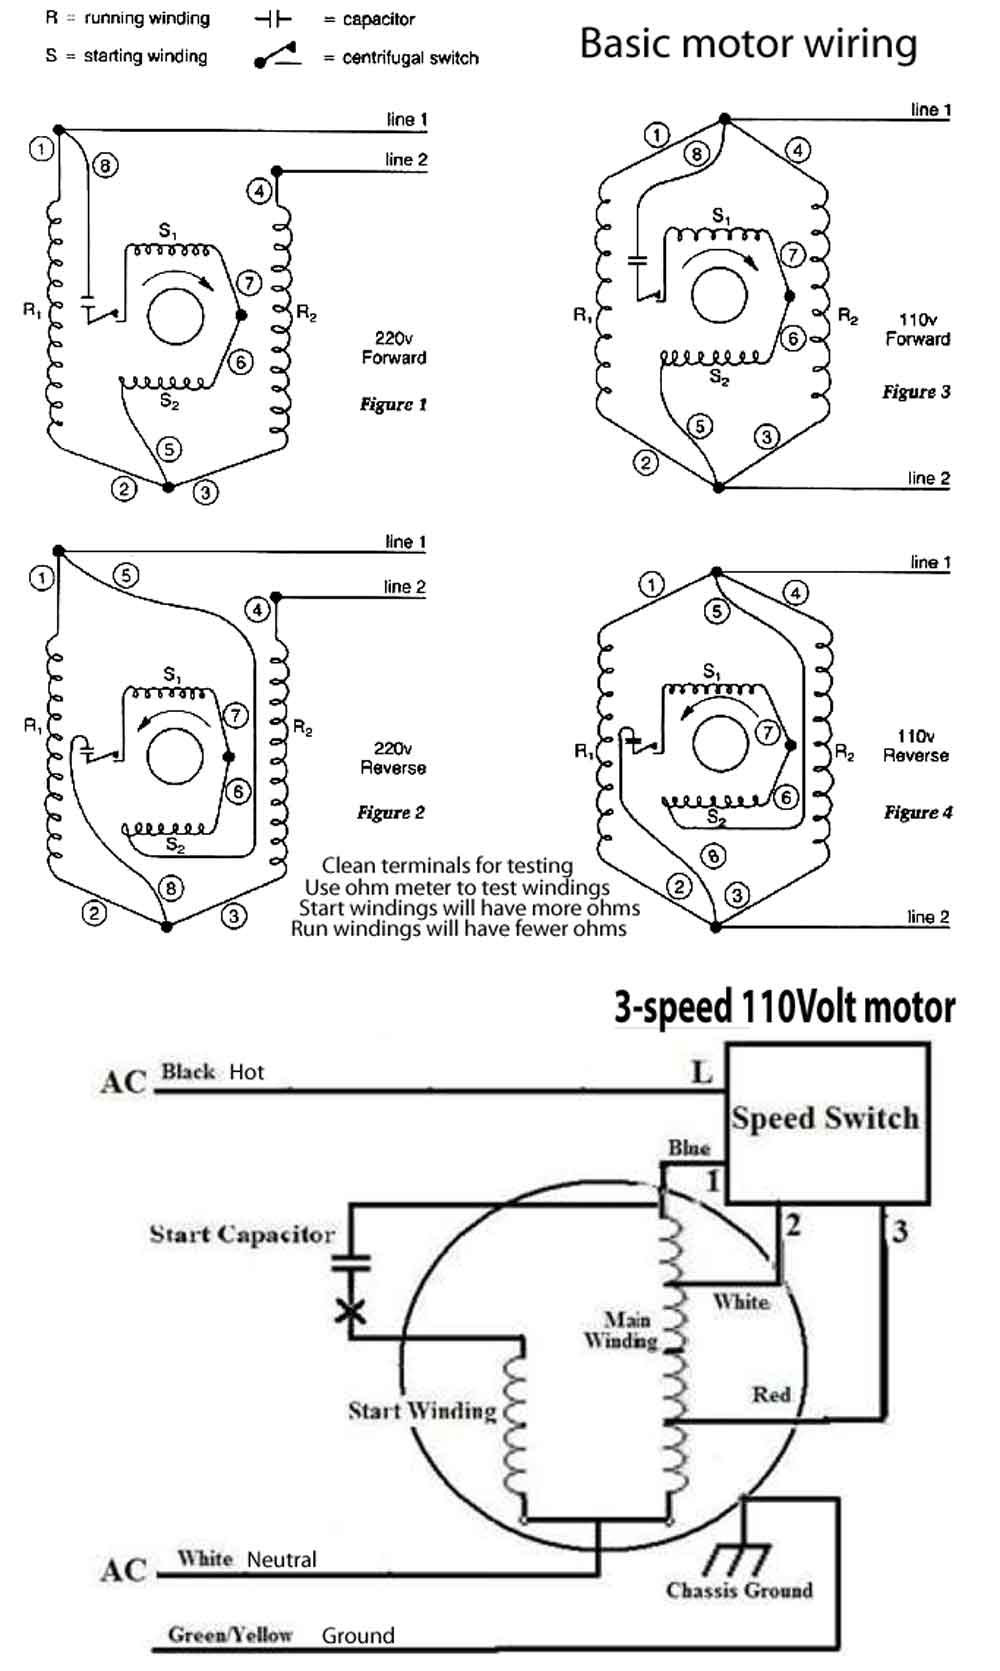 How To Wire 3-Speed Fan Switch - Ceiling Fan Switch Wiring Diagram